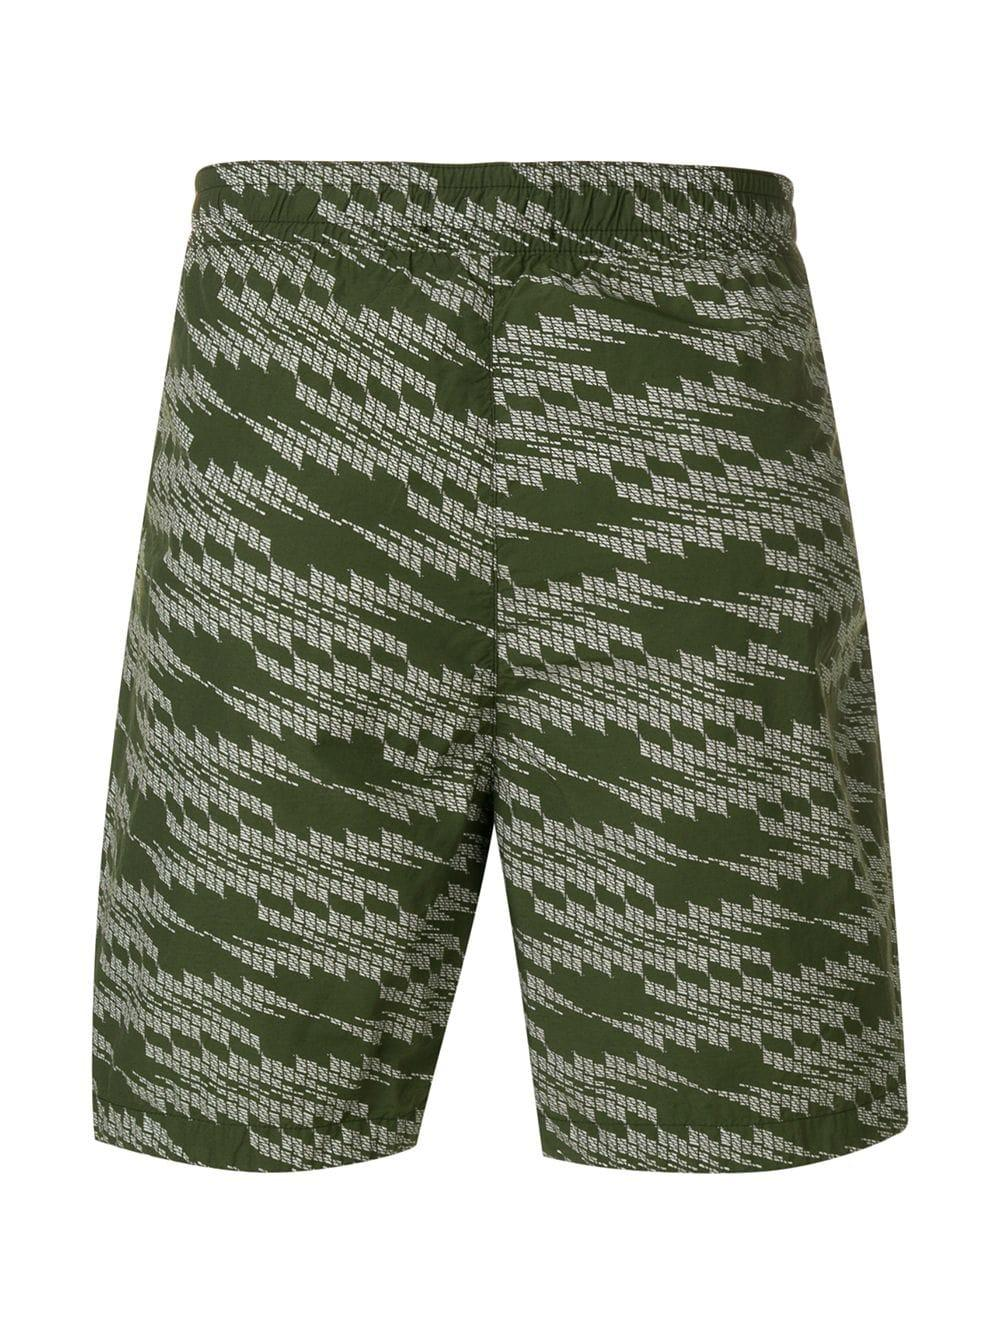 7eee09175cae9 Lyst - Stone Island Shadow Project Patterned Swimming Shorts in ...